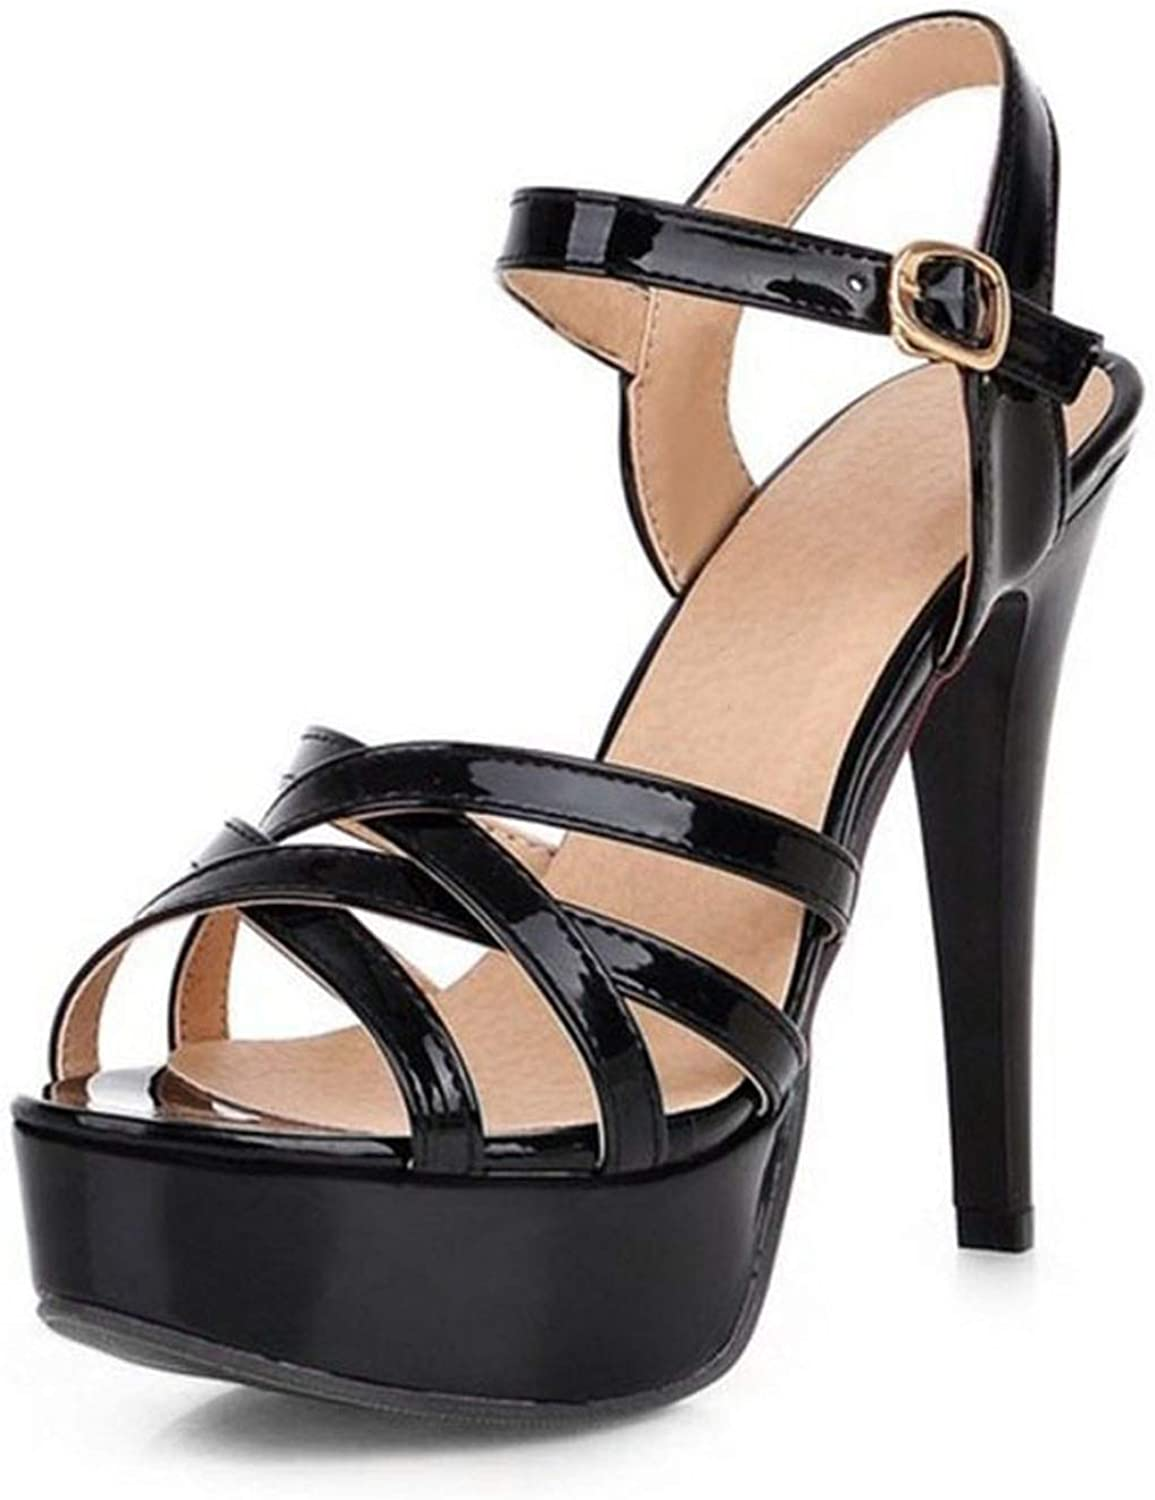 High Heel Sandals Peep Toe Ankle Strap Thin Heel Sandals Office Lady Summer shoes